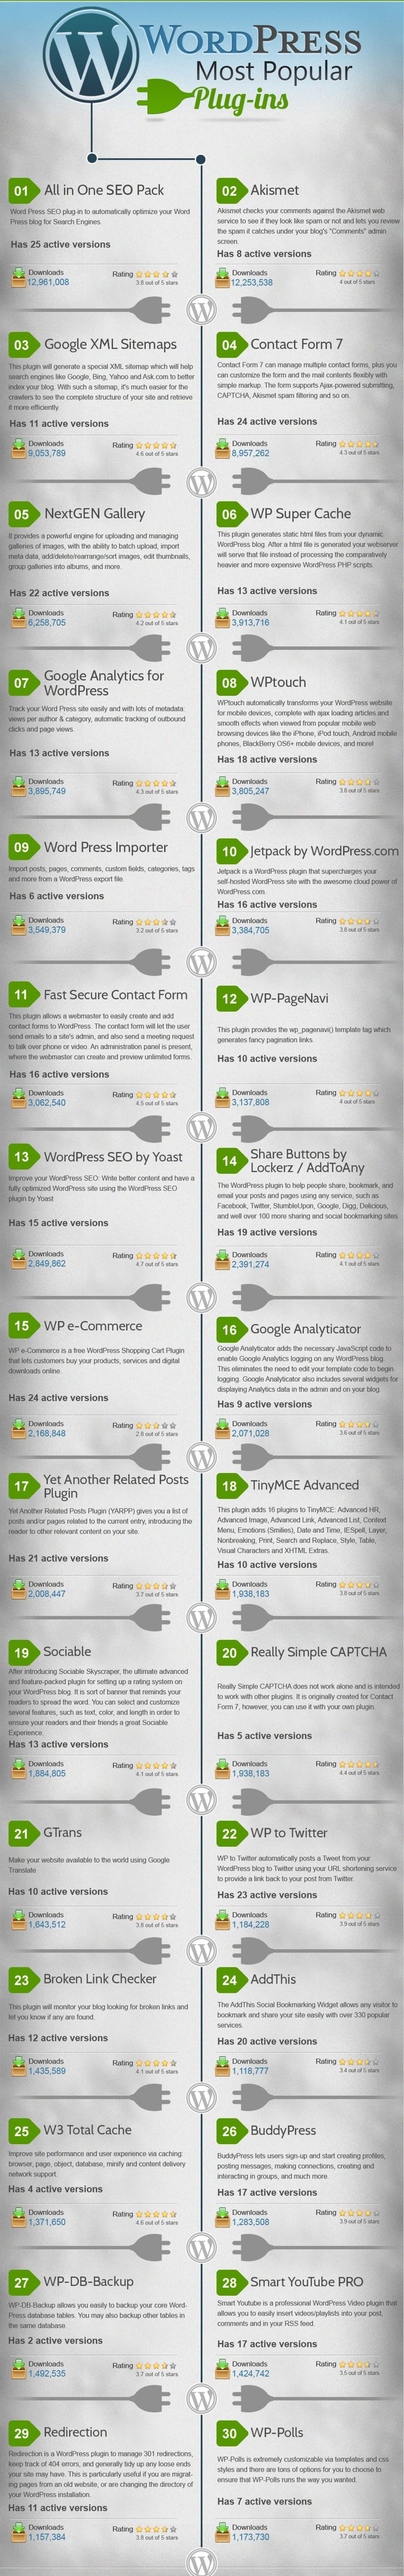 Checkout WordPress most popular plugins infographic